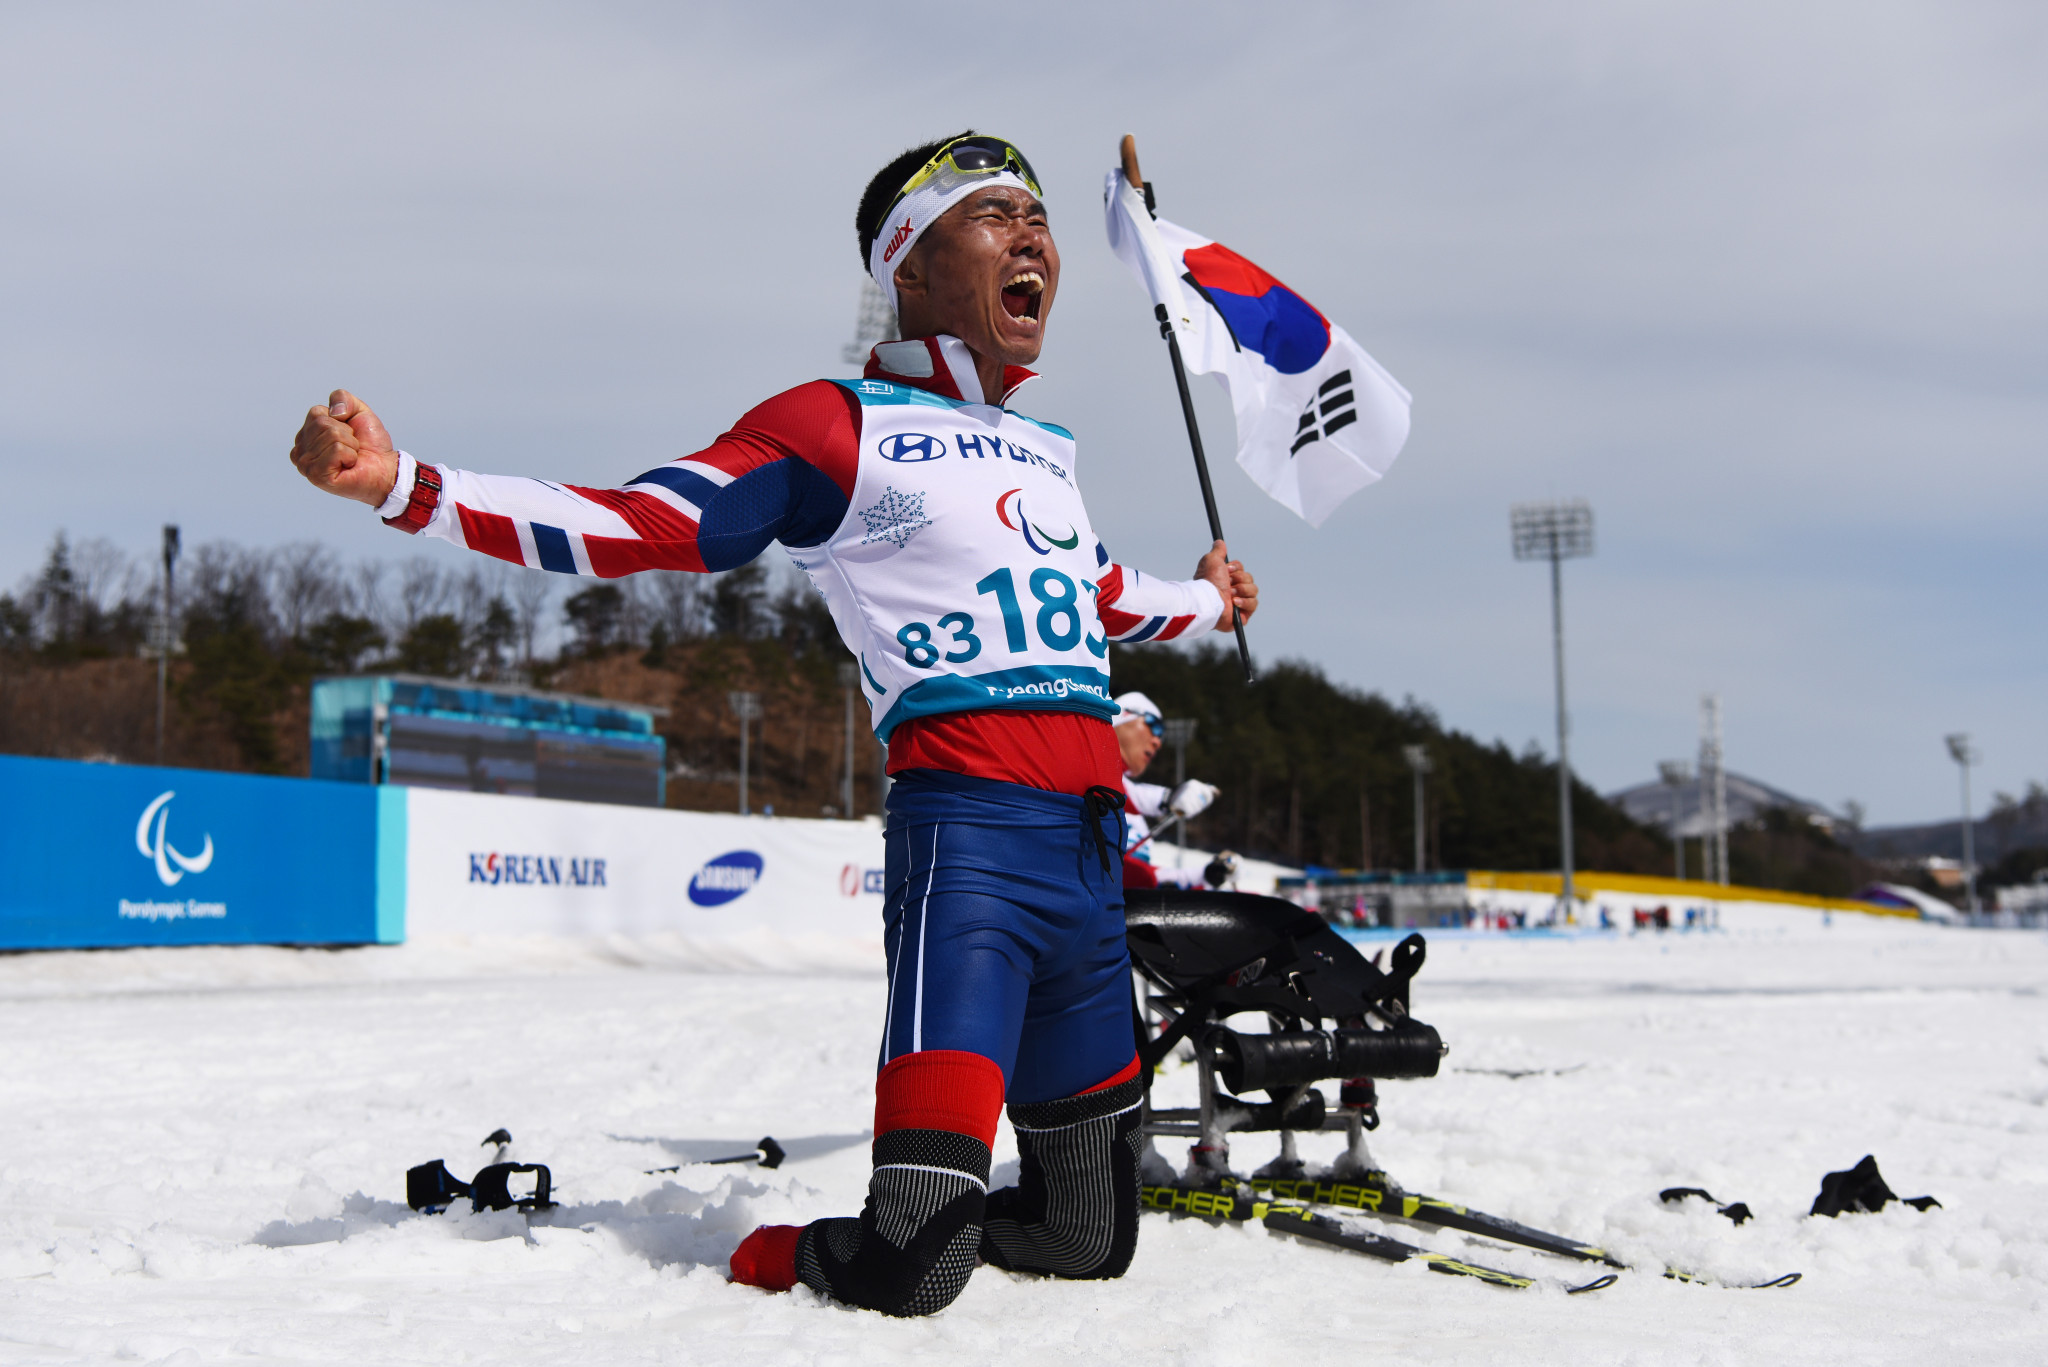 Sin claims South Korea's maiden Winter Paralympic title at Pyeongchang 2018